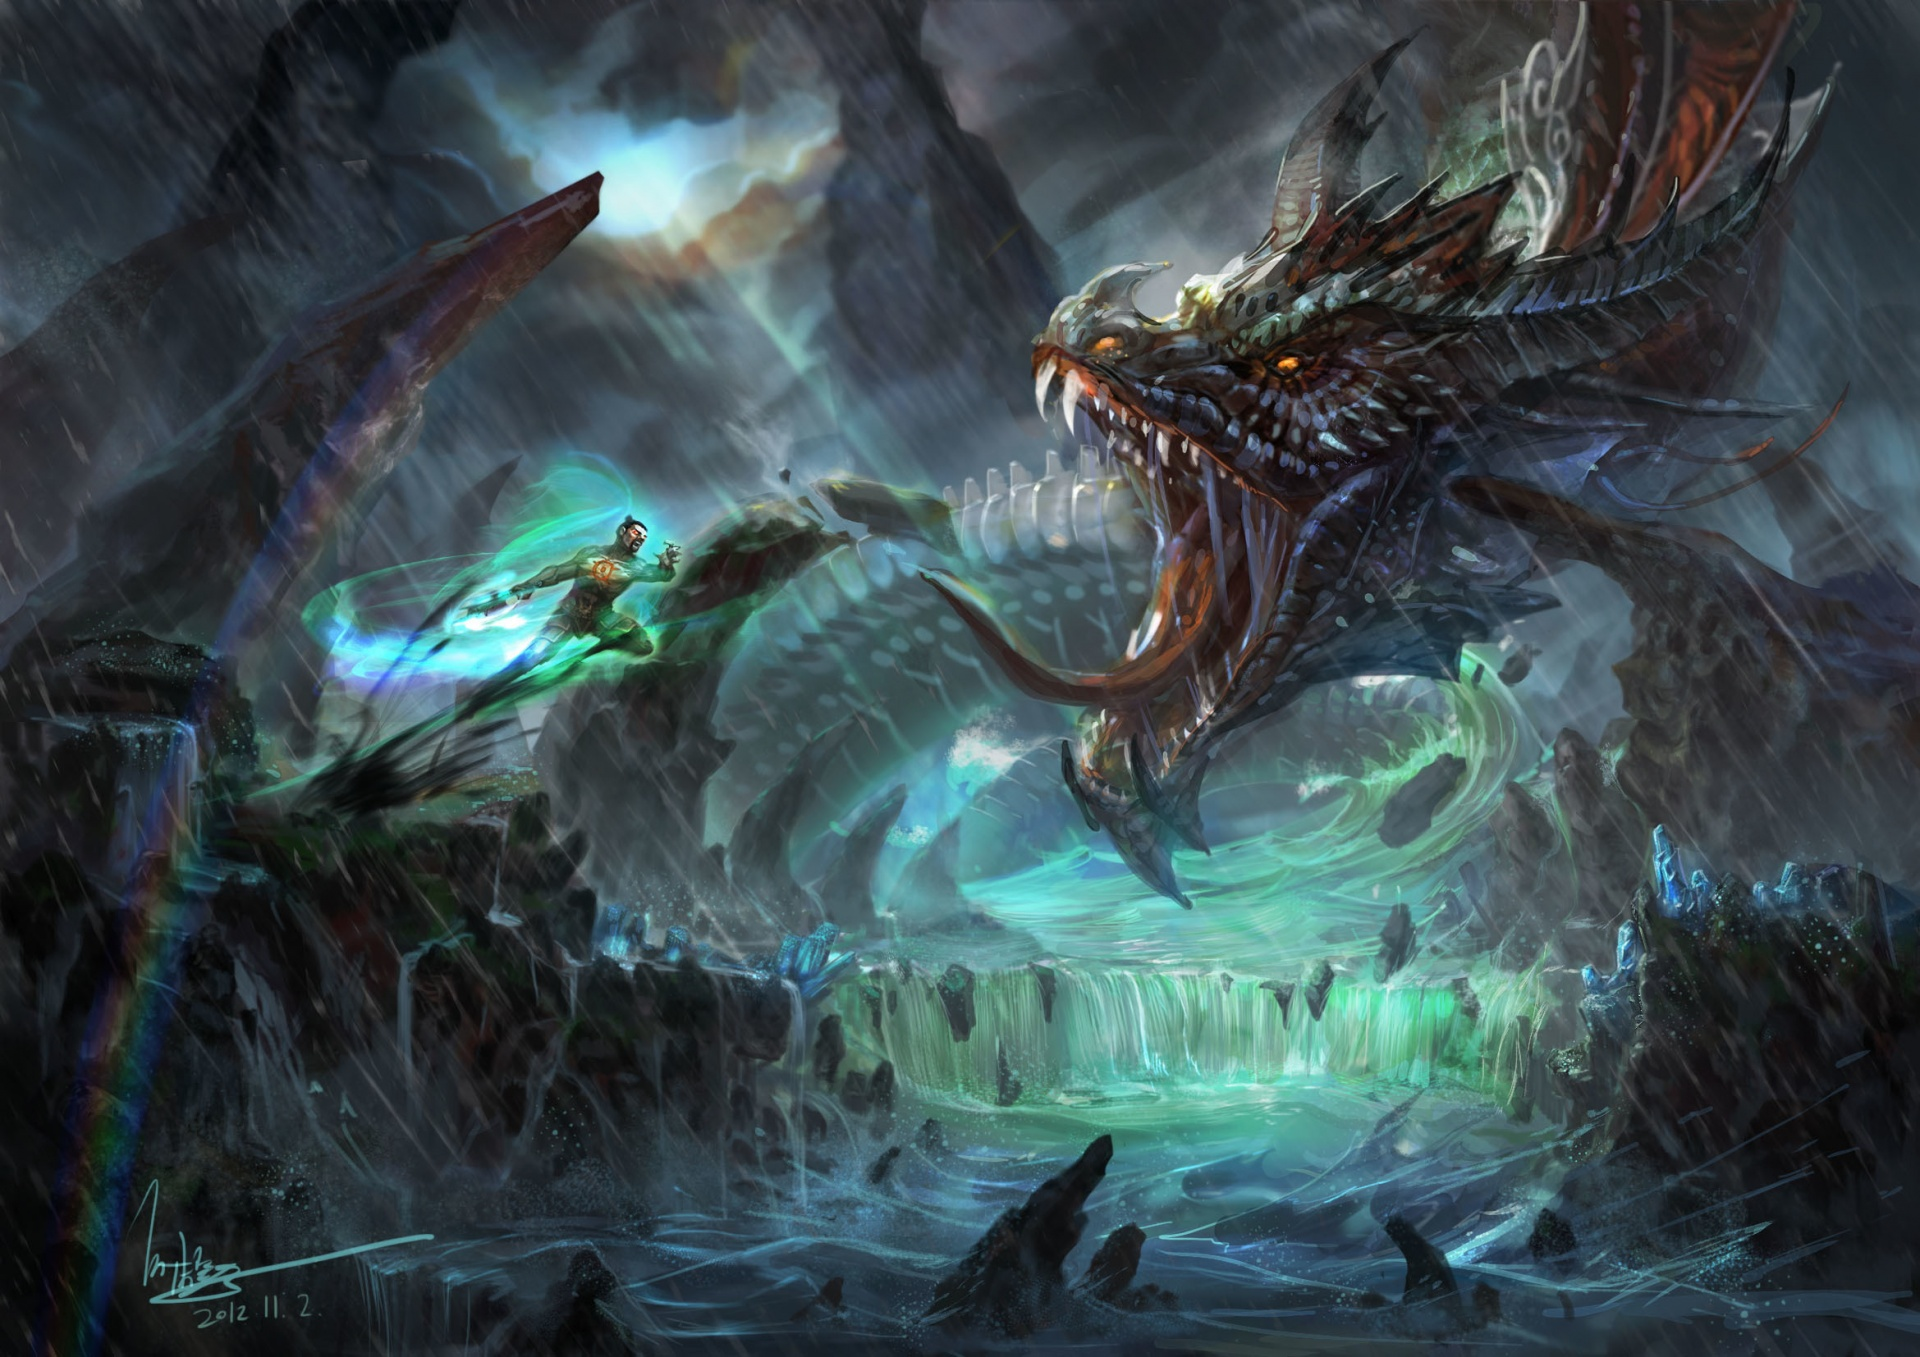 Wall Mural Posters Battles Monsters Fantasy Dragon Dragons Warrior Warriors